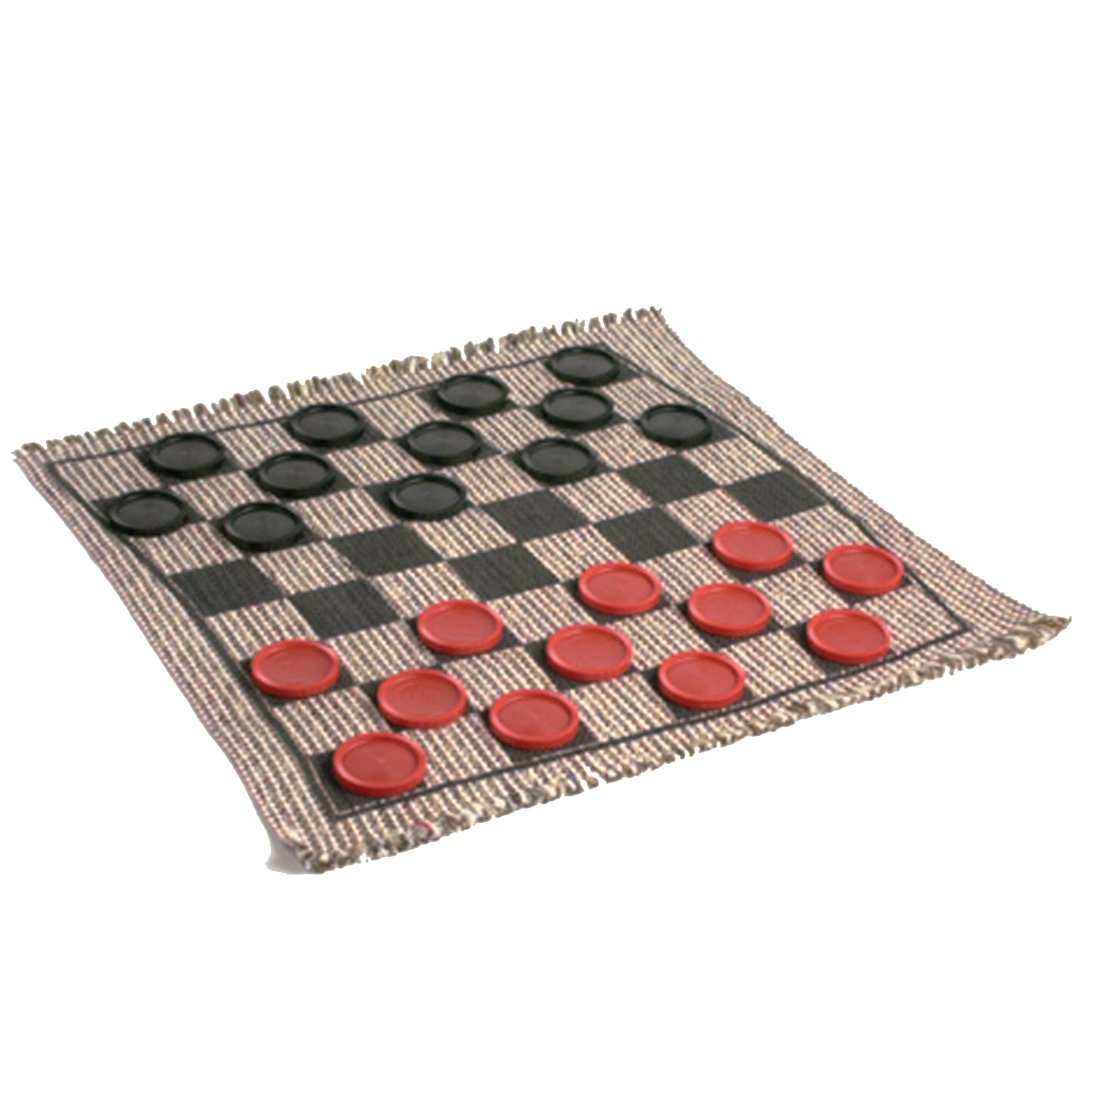 3-in-1 Jumbo Checkers